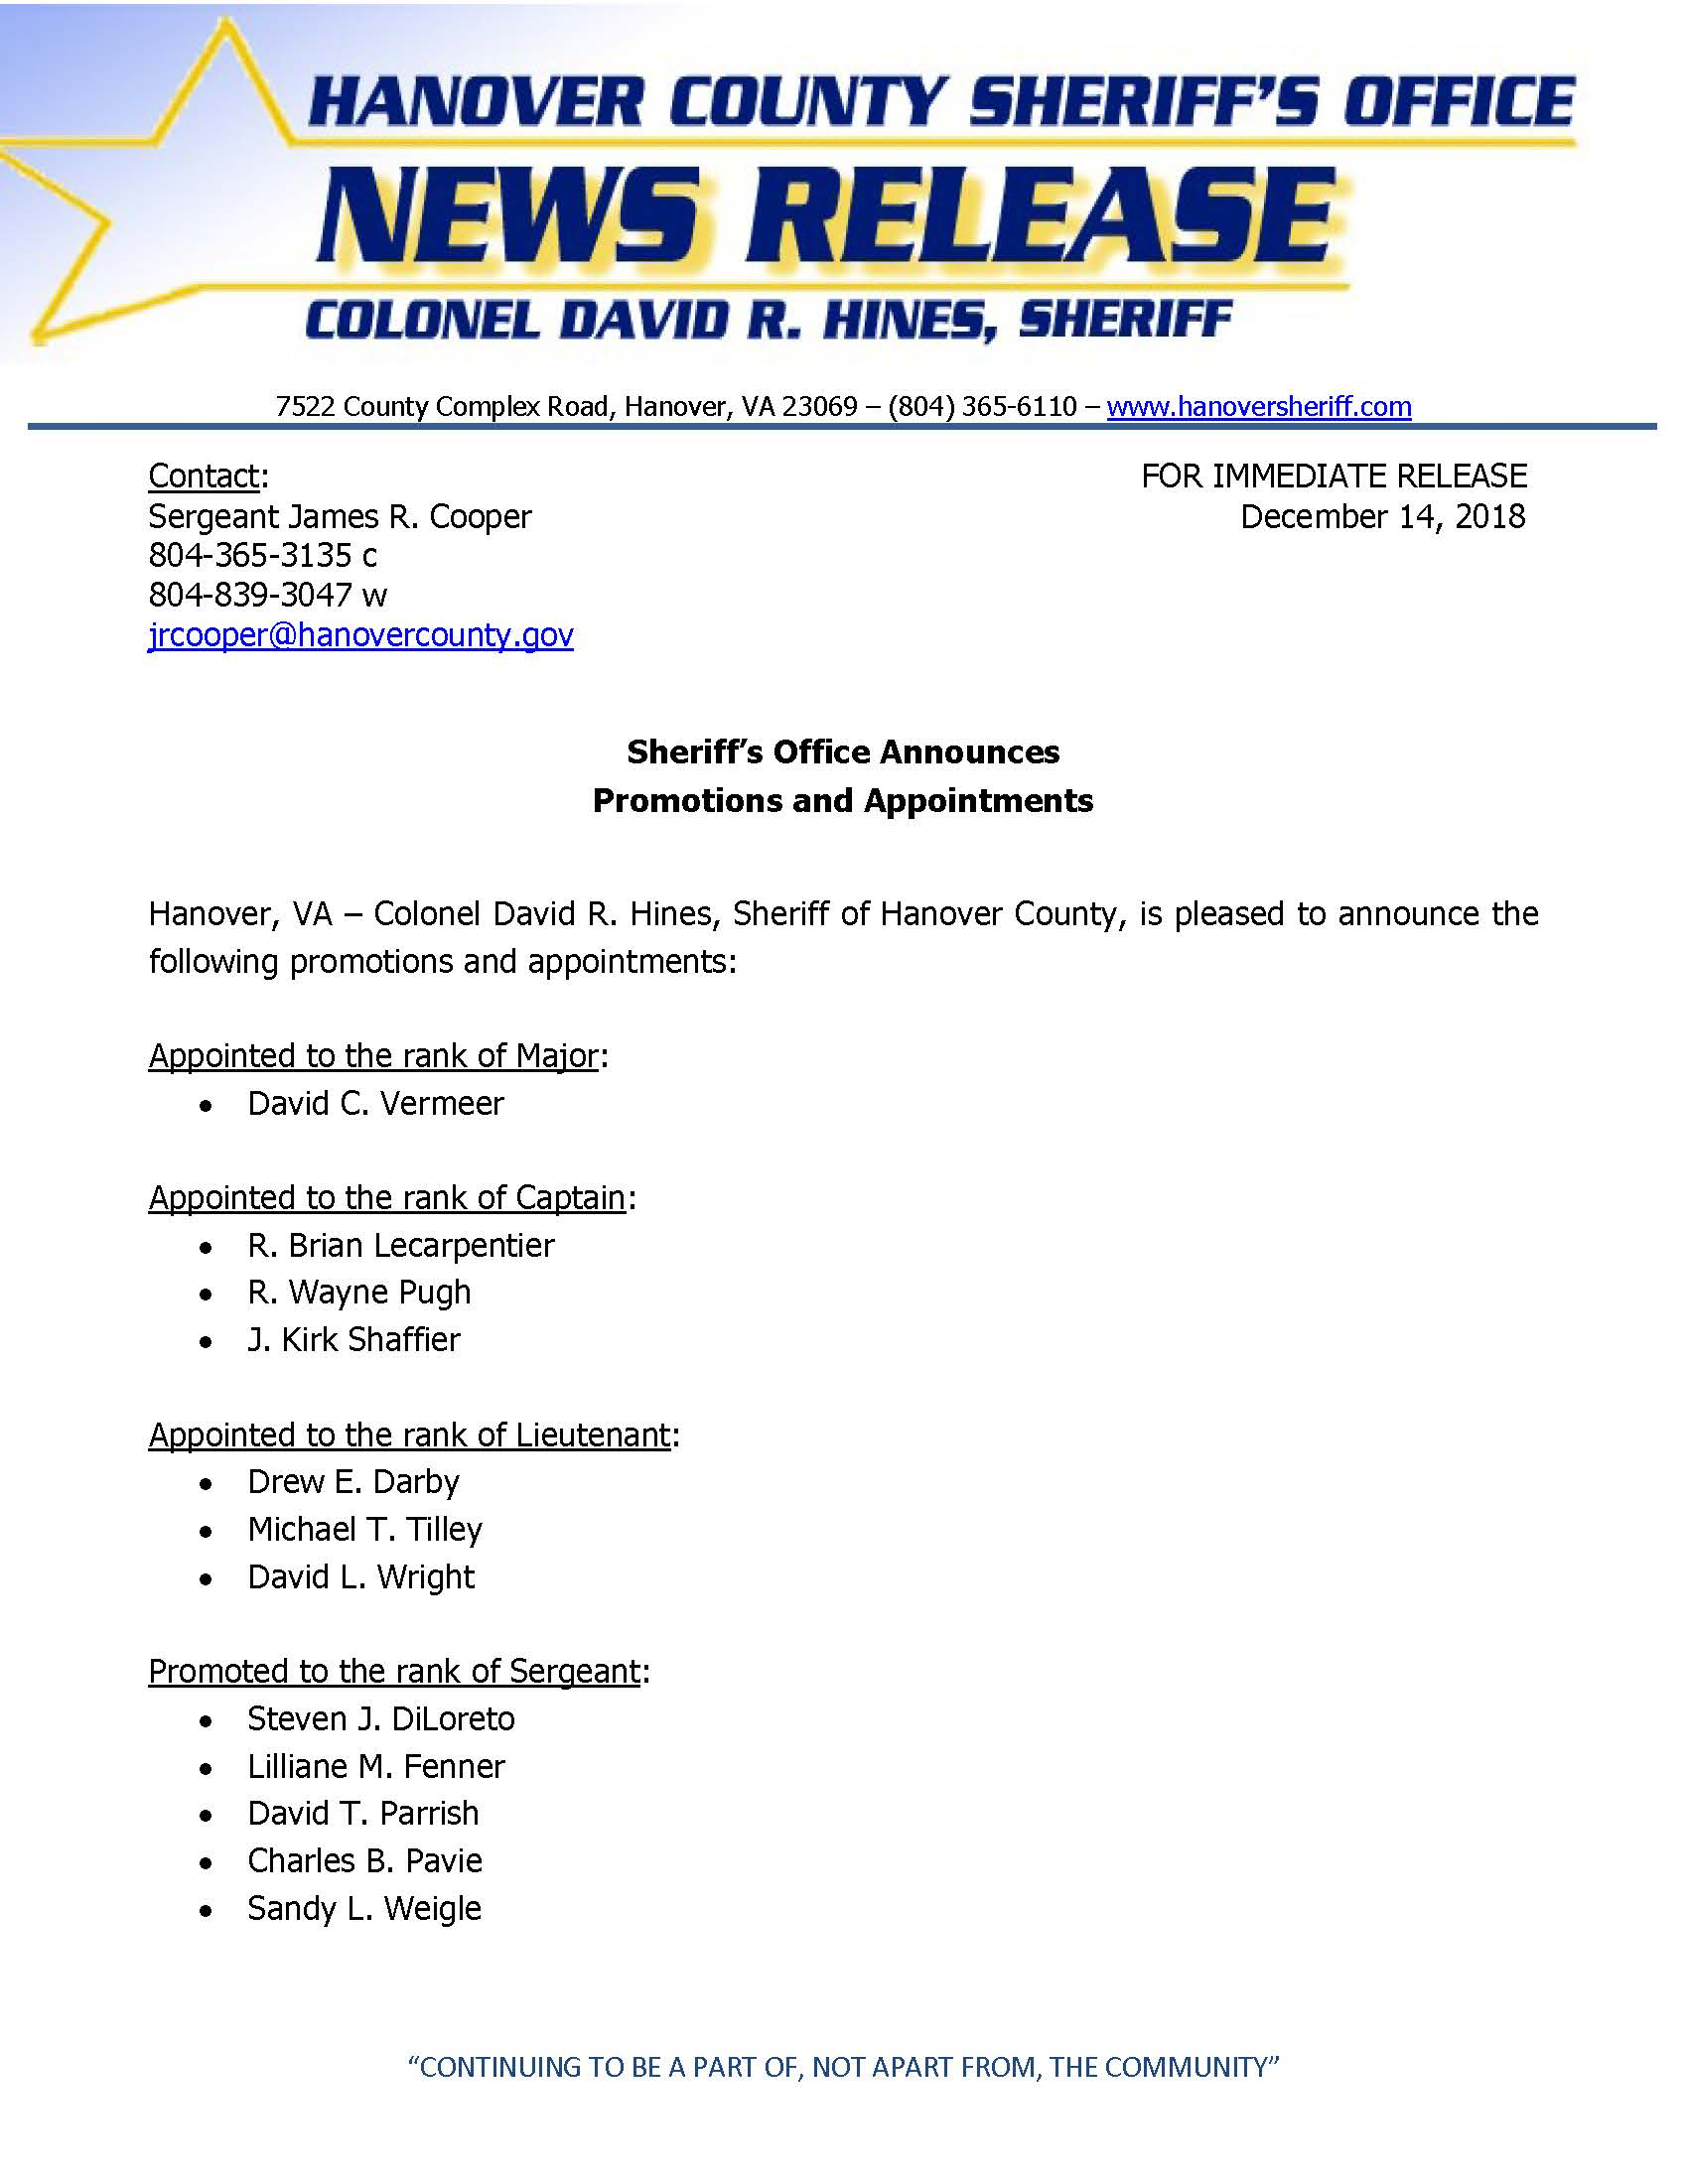 HCSO - Sheriffs Office Announces Promotions and Appointments- December 14, 2018_Page_1